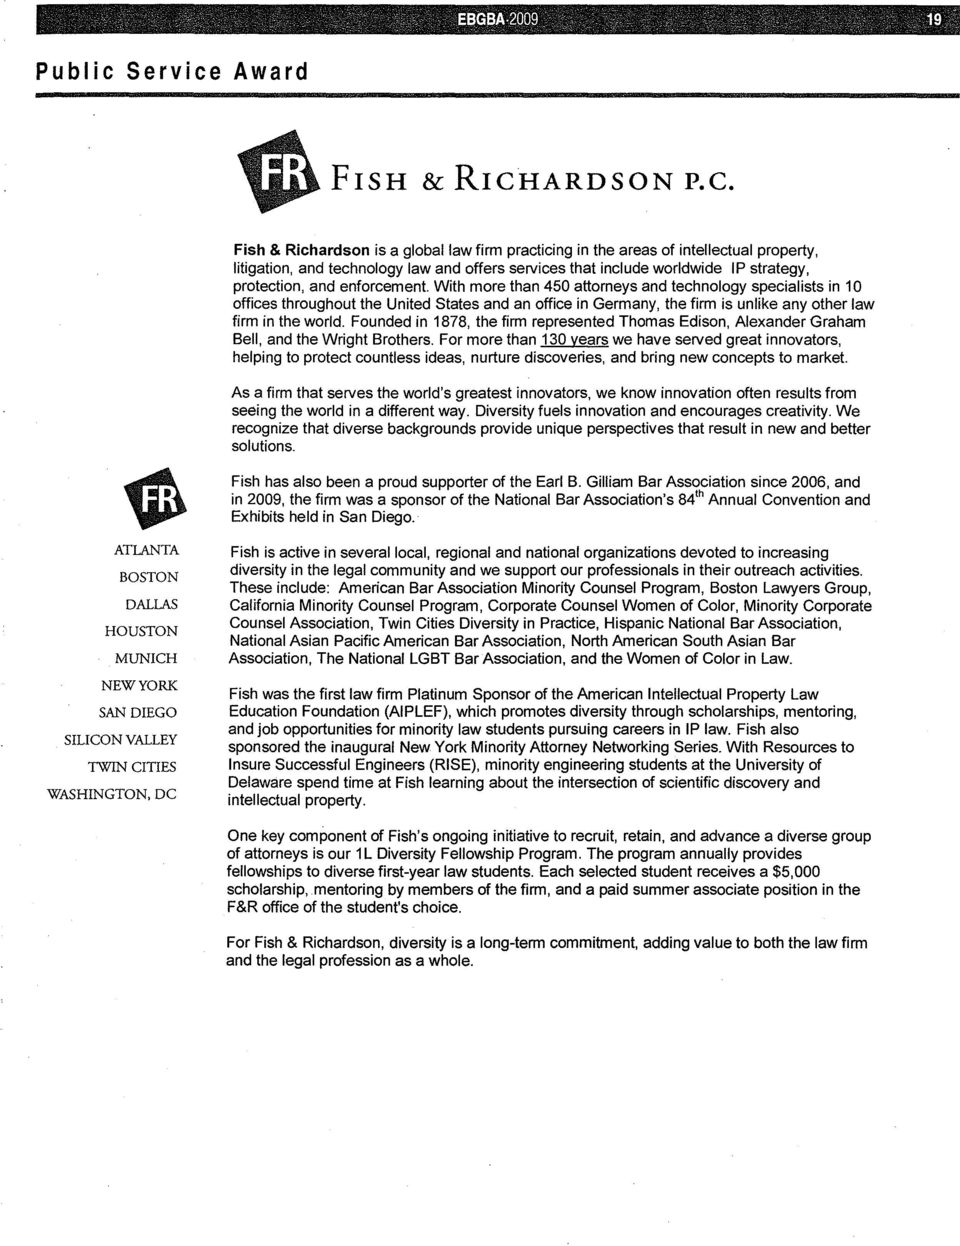 Fish & Richardson is a global law firm practicing in the areas of intellectual property, litigation, and technology law and offers services that include worldwide IP strategy, protection, and